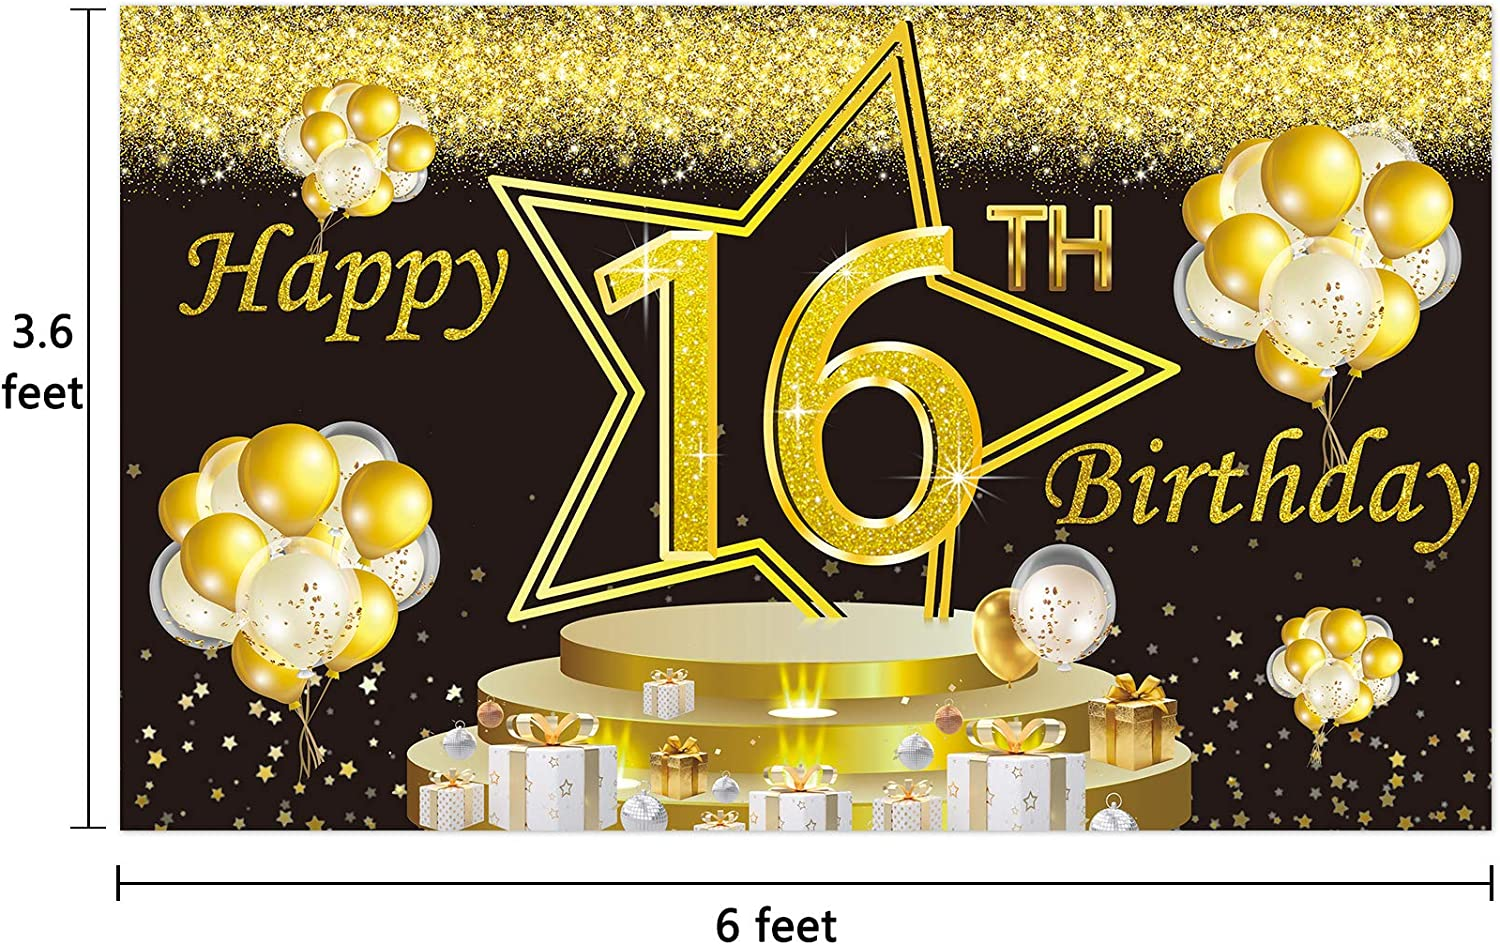 Ushinemi Happy 10th Birthday Backdrop 10 Years Old Birthday Banner Party Decorations Large Bday Wall Decor Signs 6X3.6 Ft Gold and Black